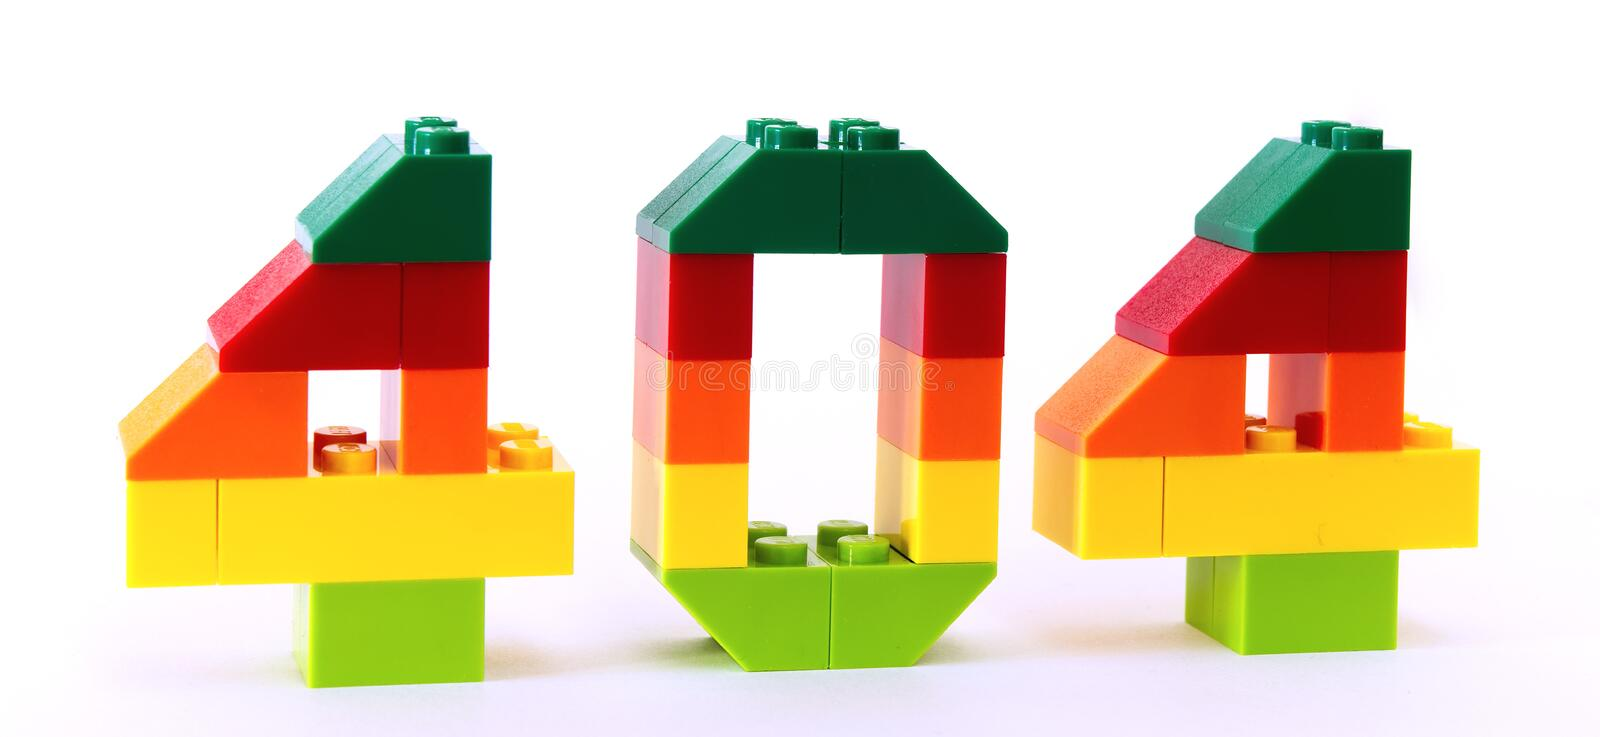 404 error code in blocks royalty free stock photos